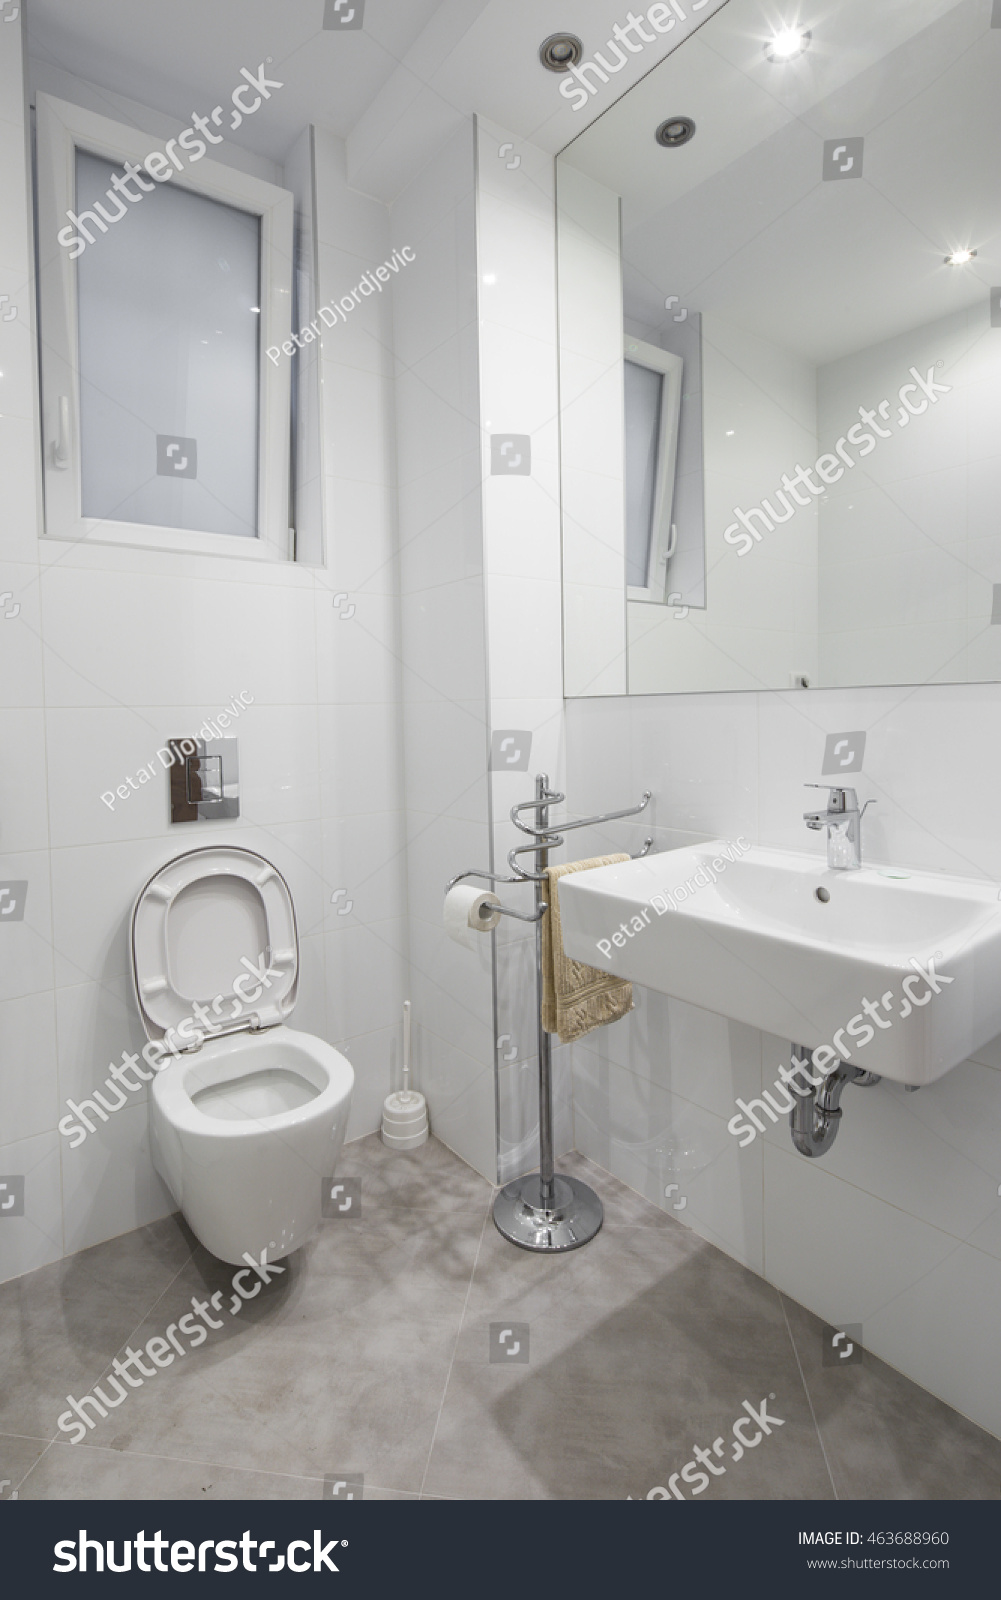 Small Elegant Half Bathroom Stock Photo (Royalty Free) 463688960 ...